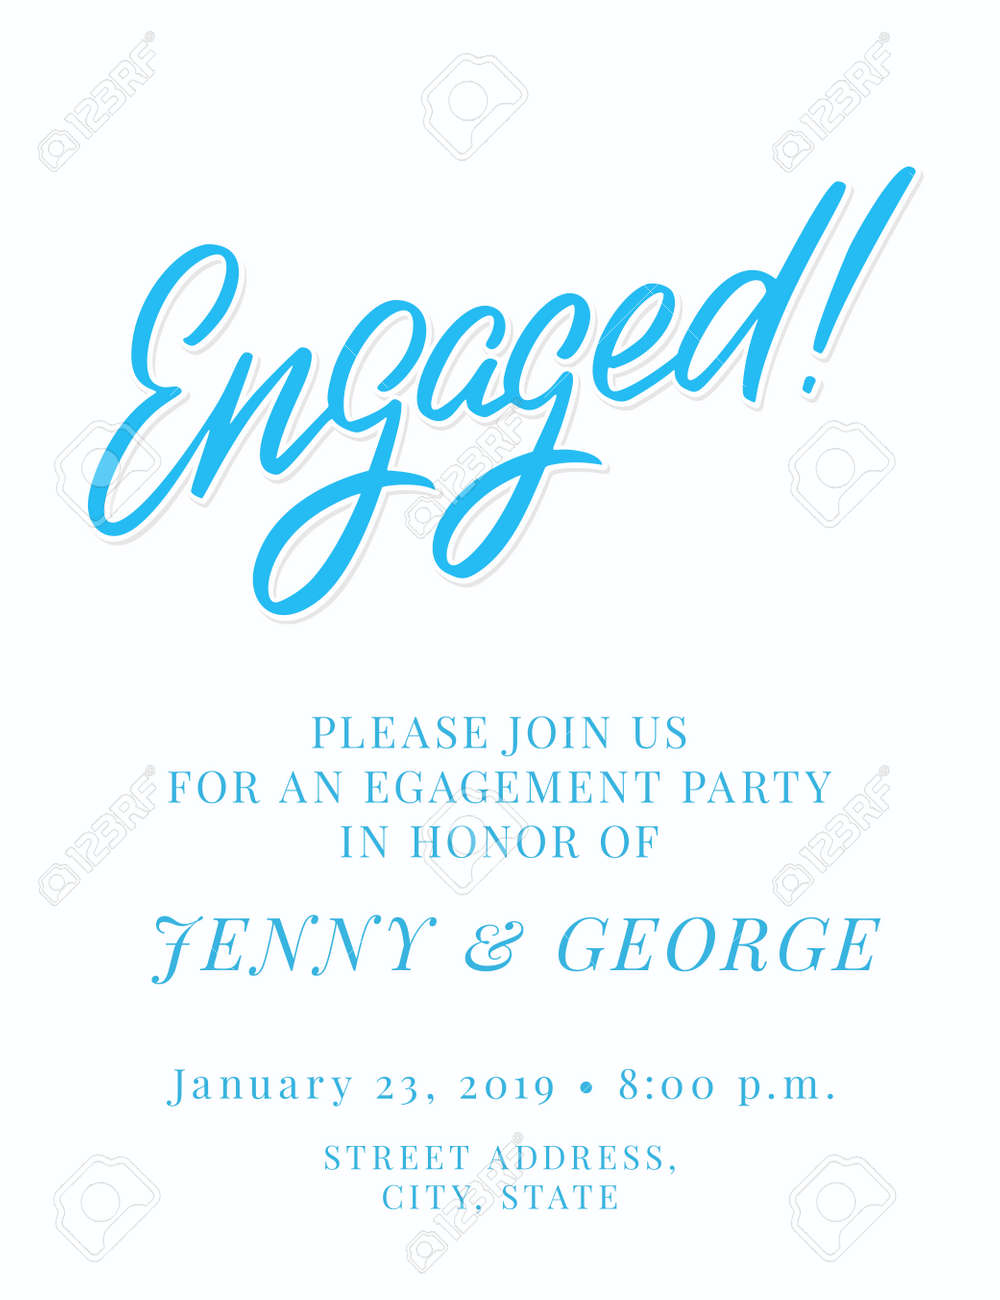 Free Engagement Party Invitation Template from previews.123rf.com